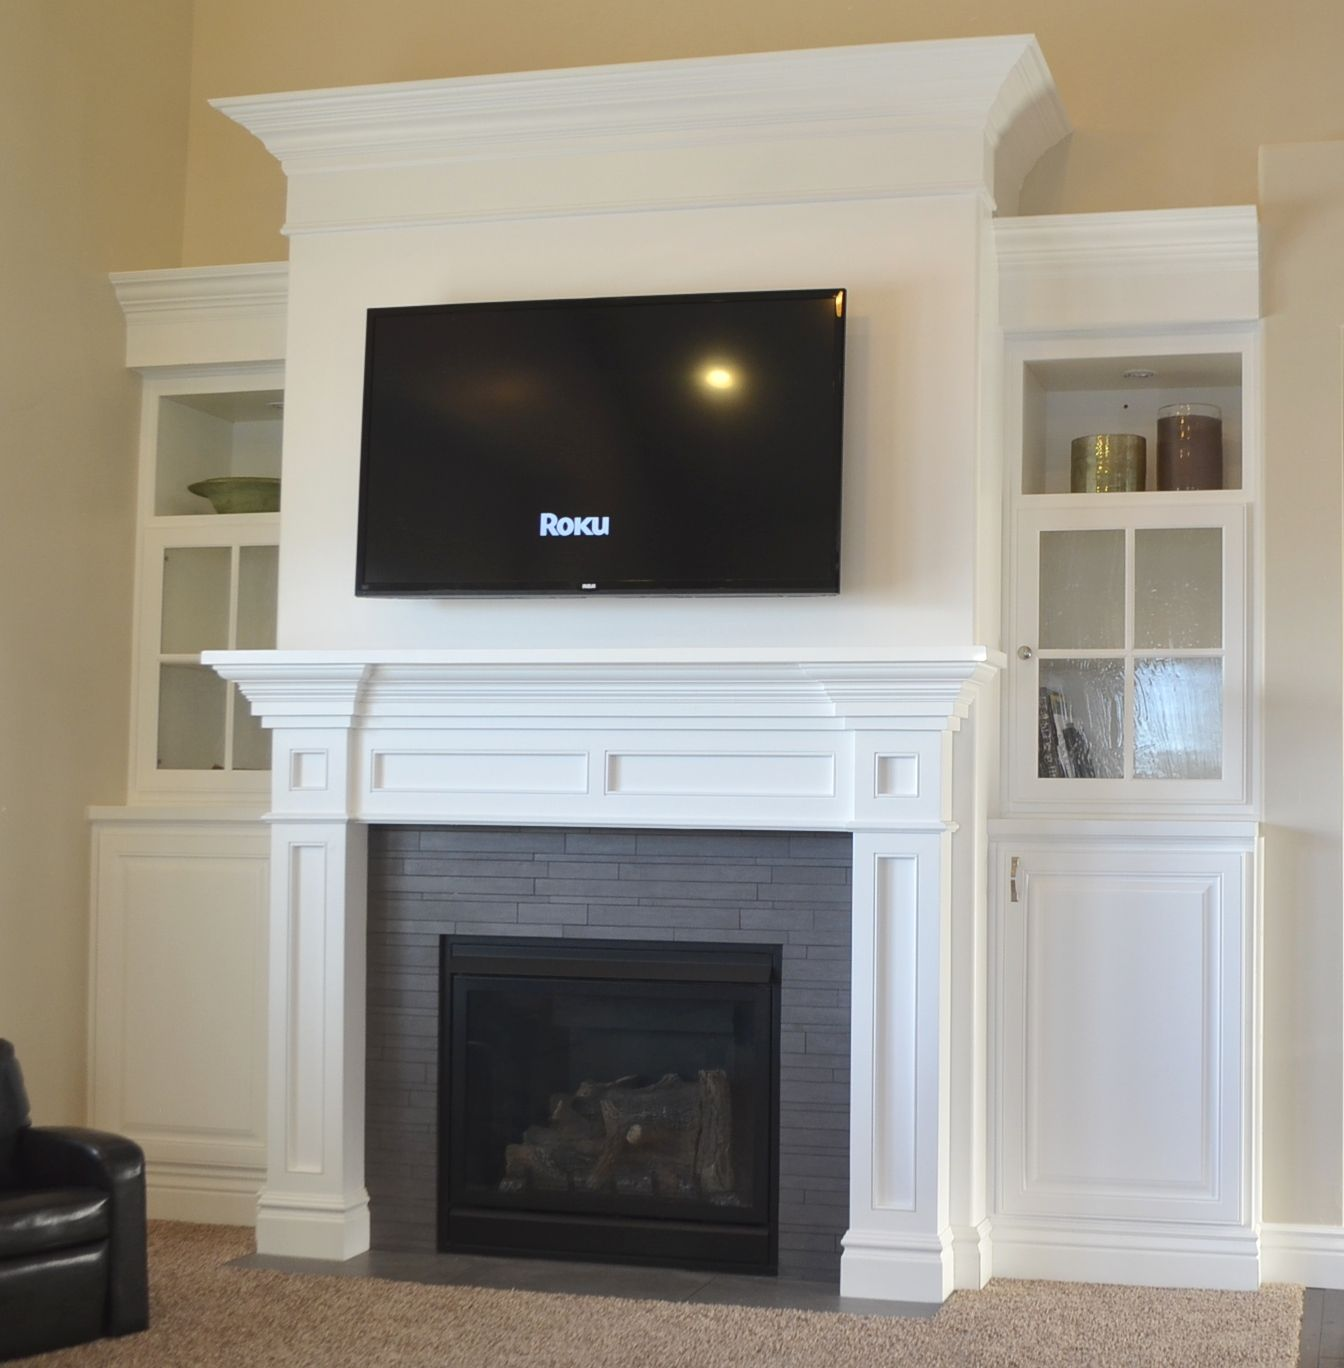 How to build your own fireplace mantel in 2020 with